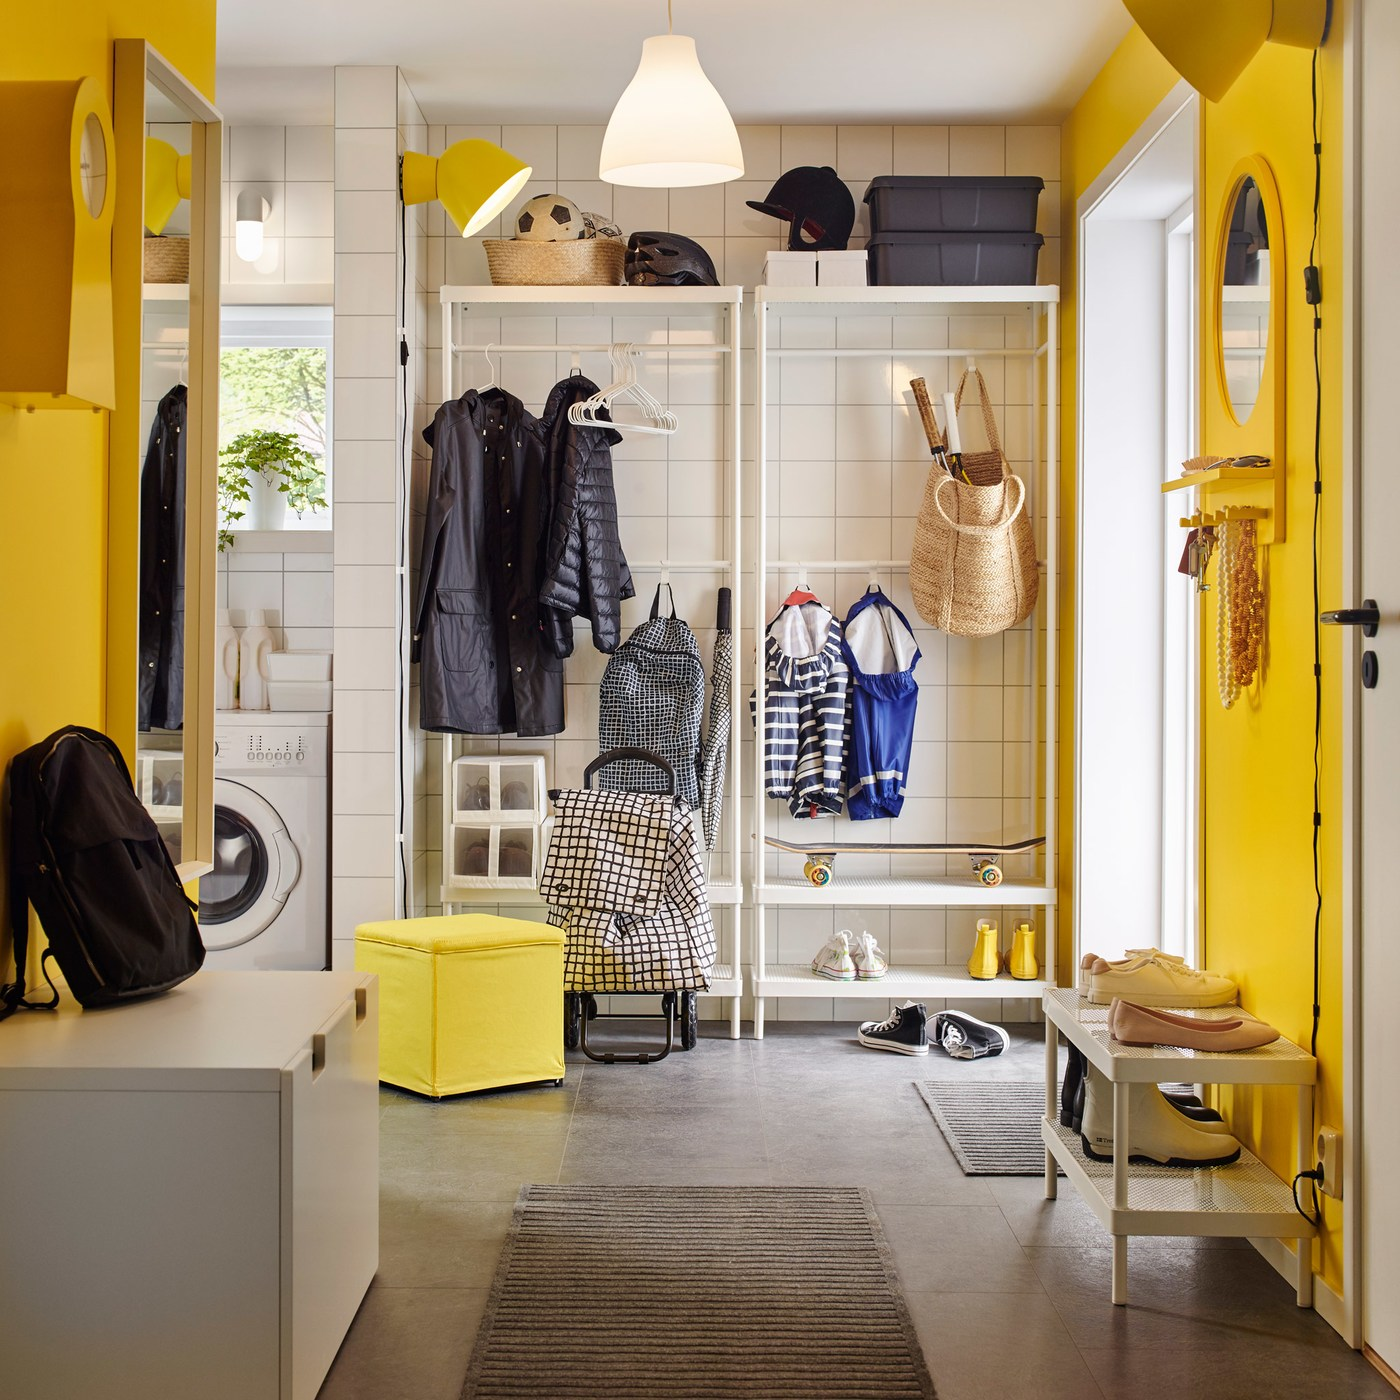 A bright yellow and white hallway with a white coat and shoe rack.